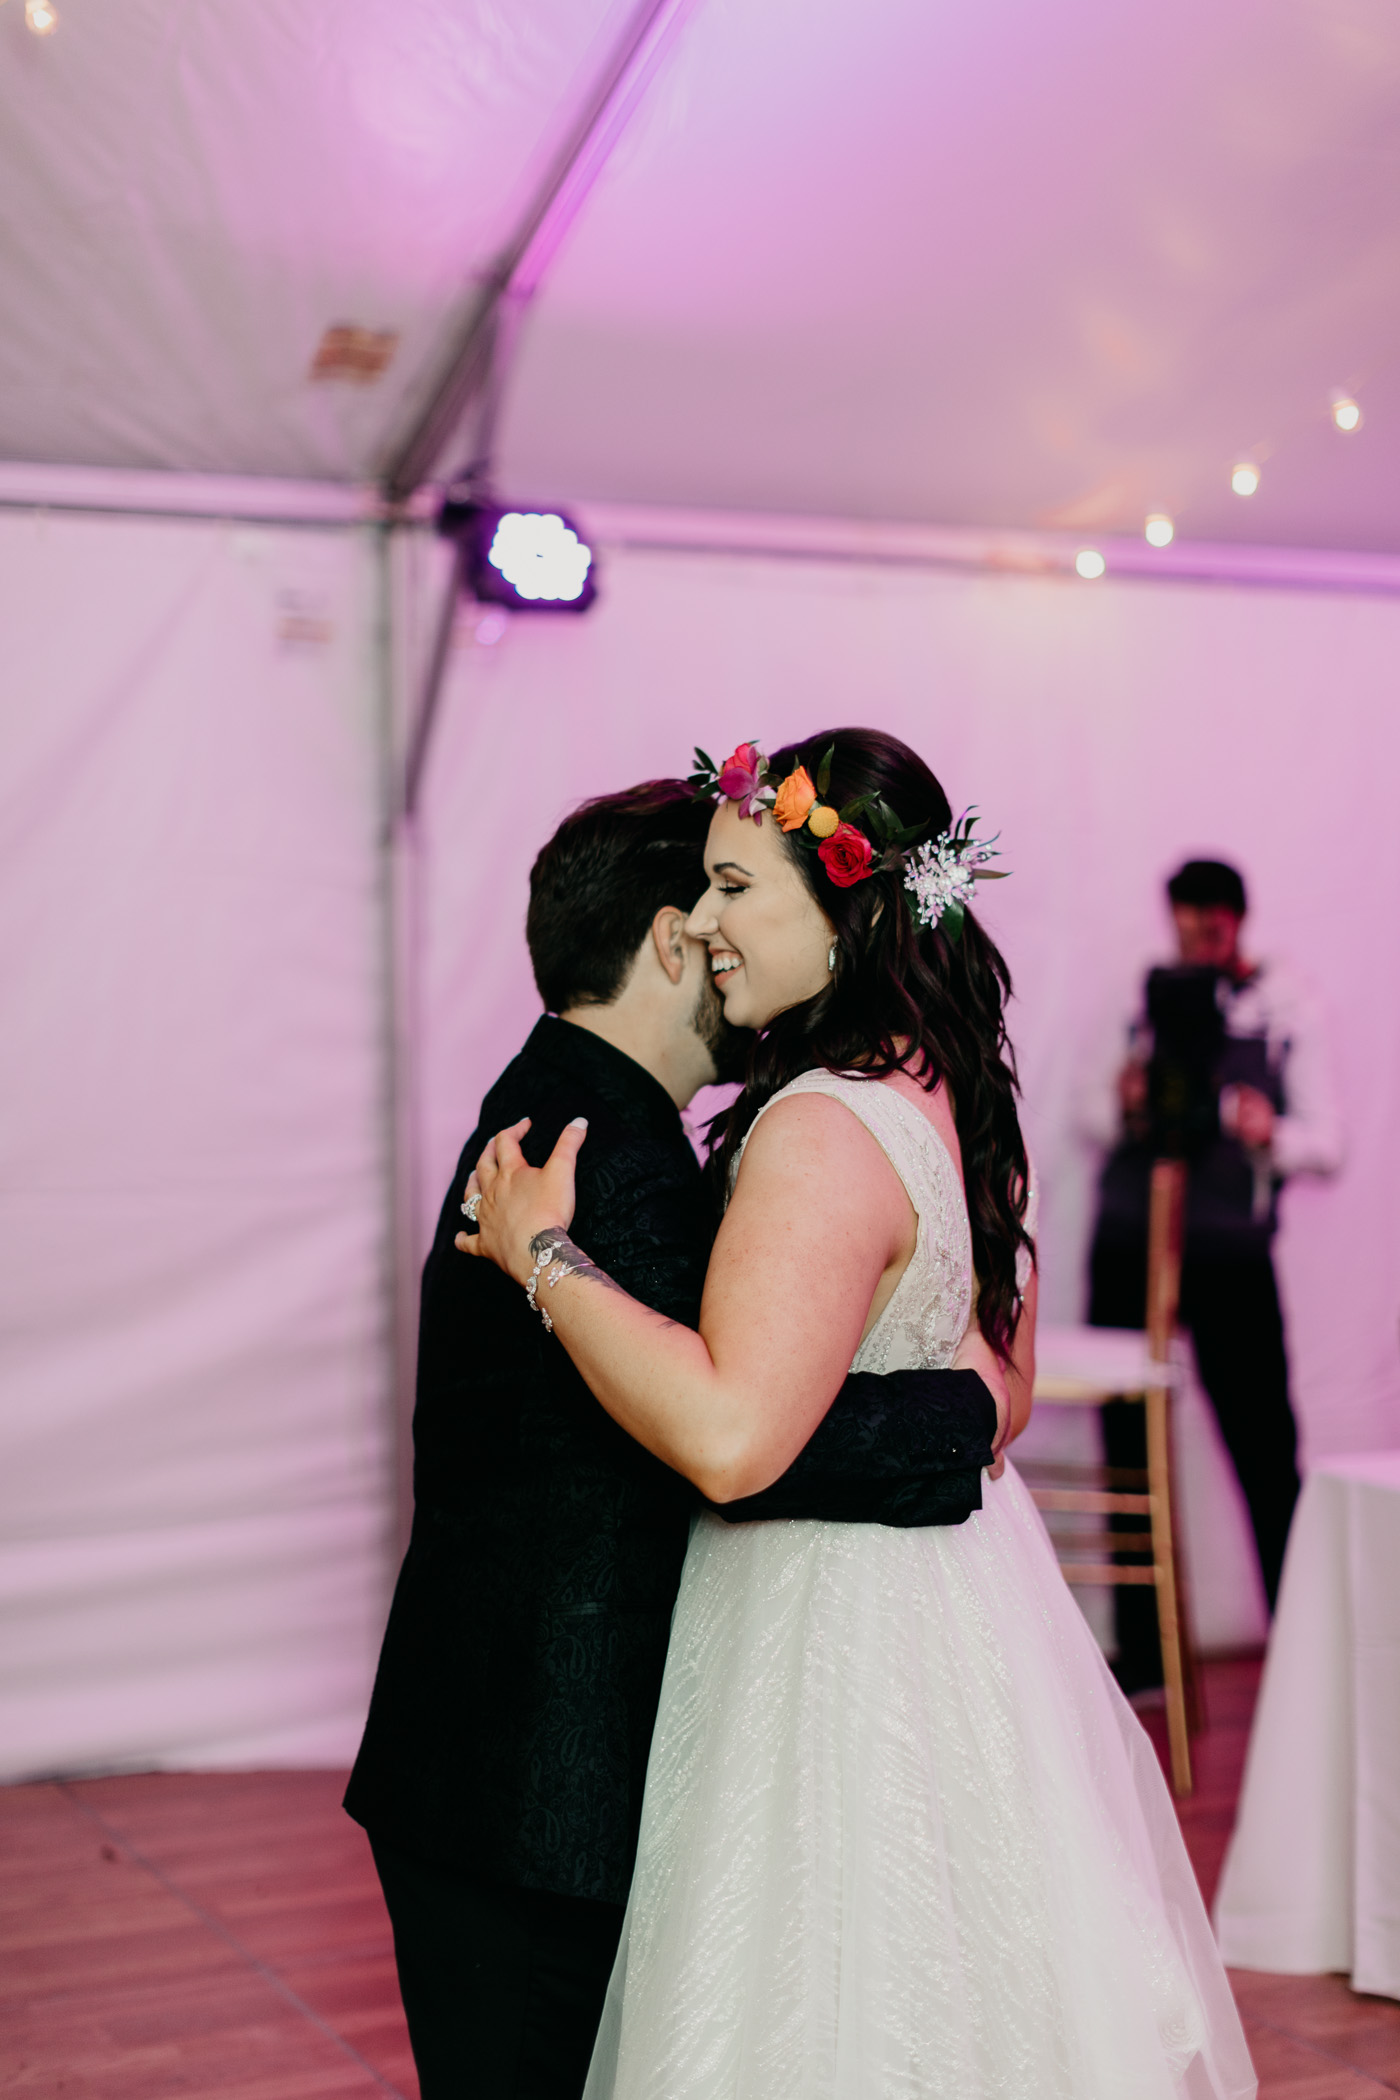 Outdoor wedding reception inside tent with purple lighting